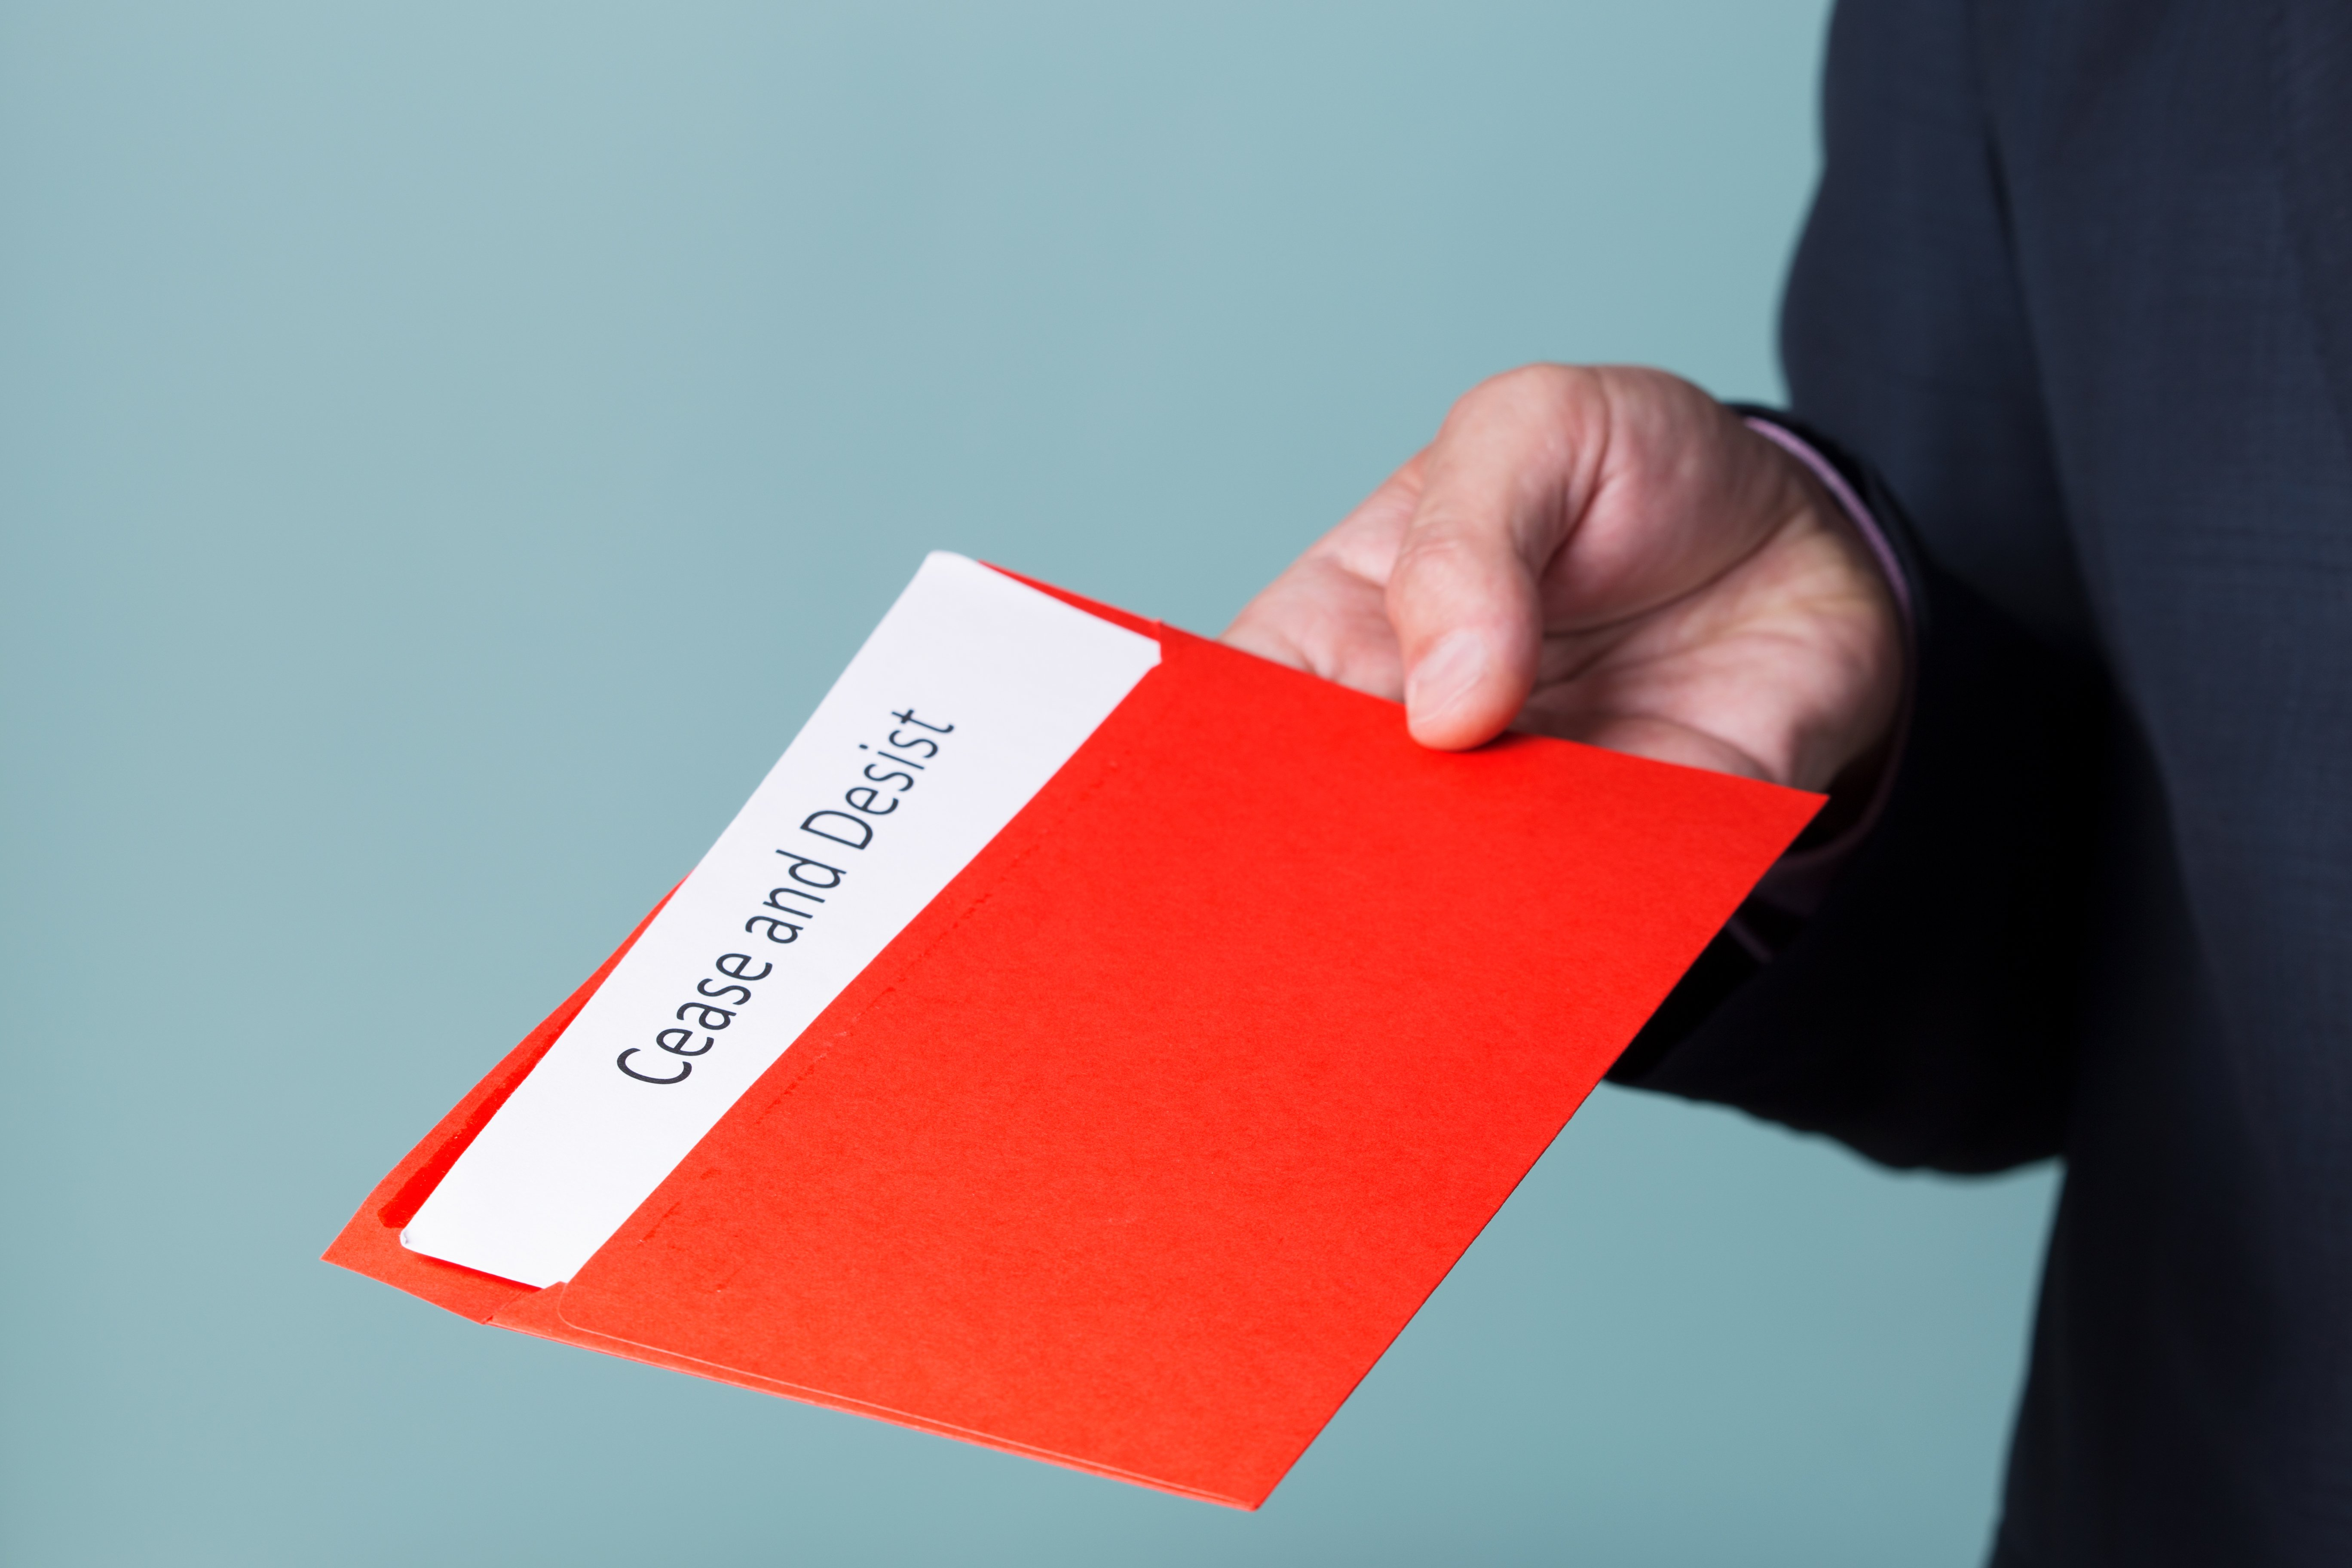 A man holding a cease and desist letter in red folder.   Source: Shutterstock